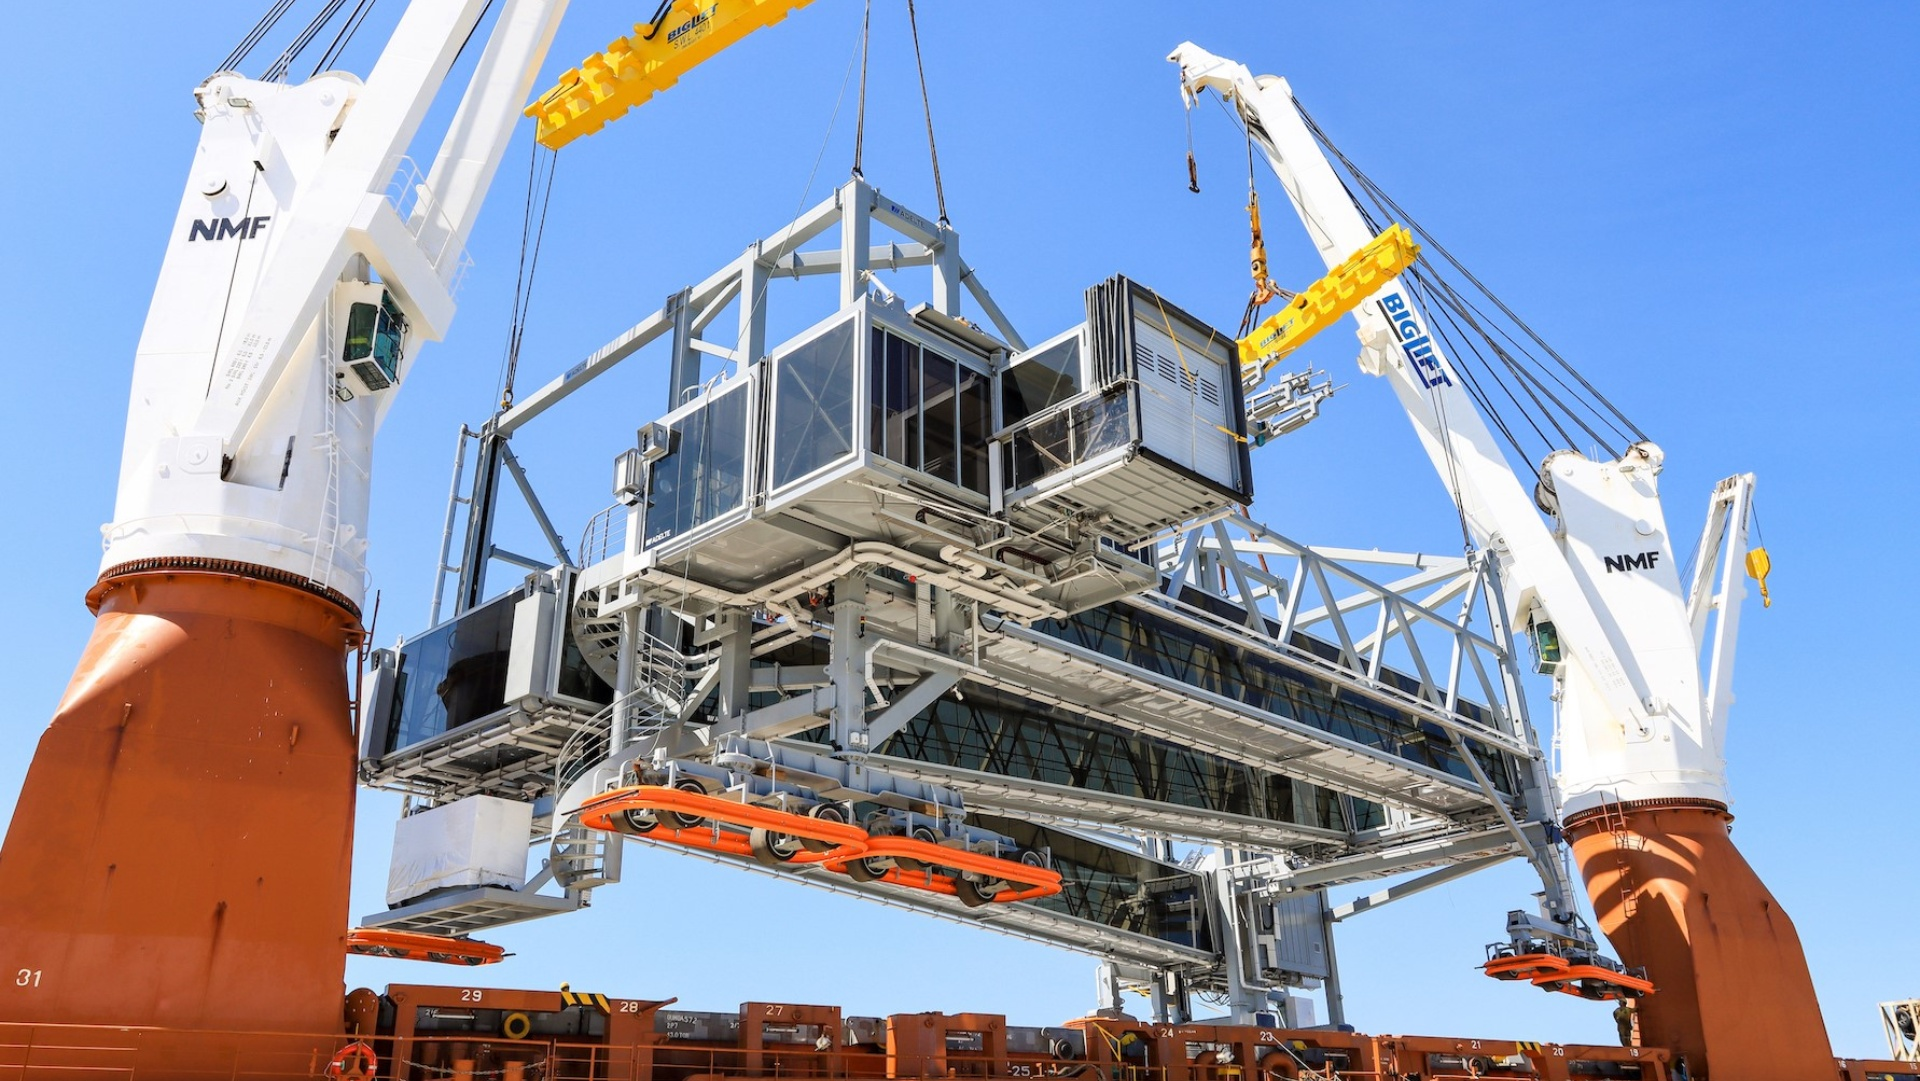 Investment, Cruise Port of Southampton boosts quayside infrastructure with new airbridge